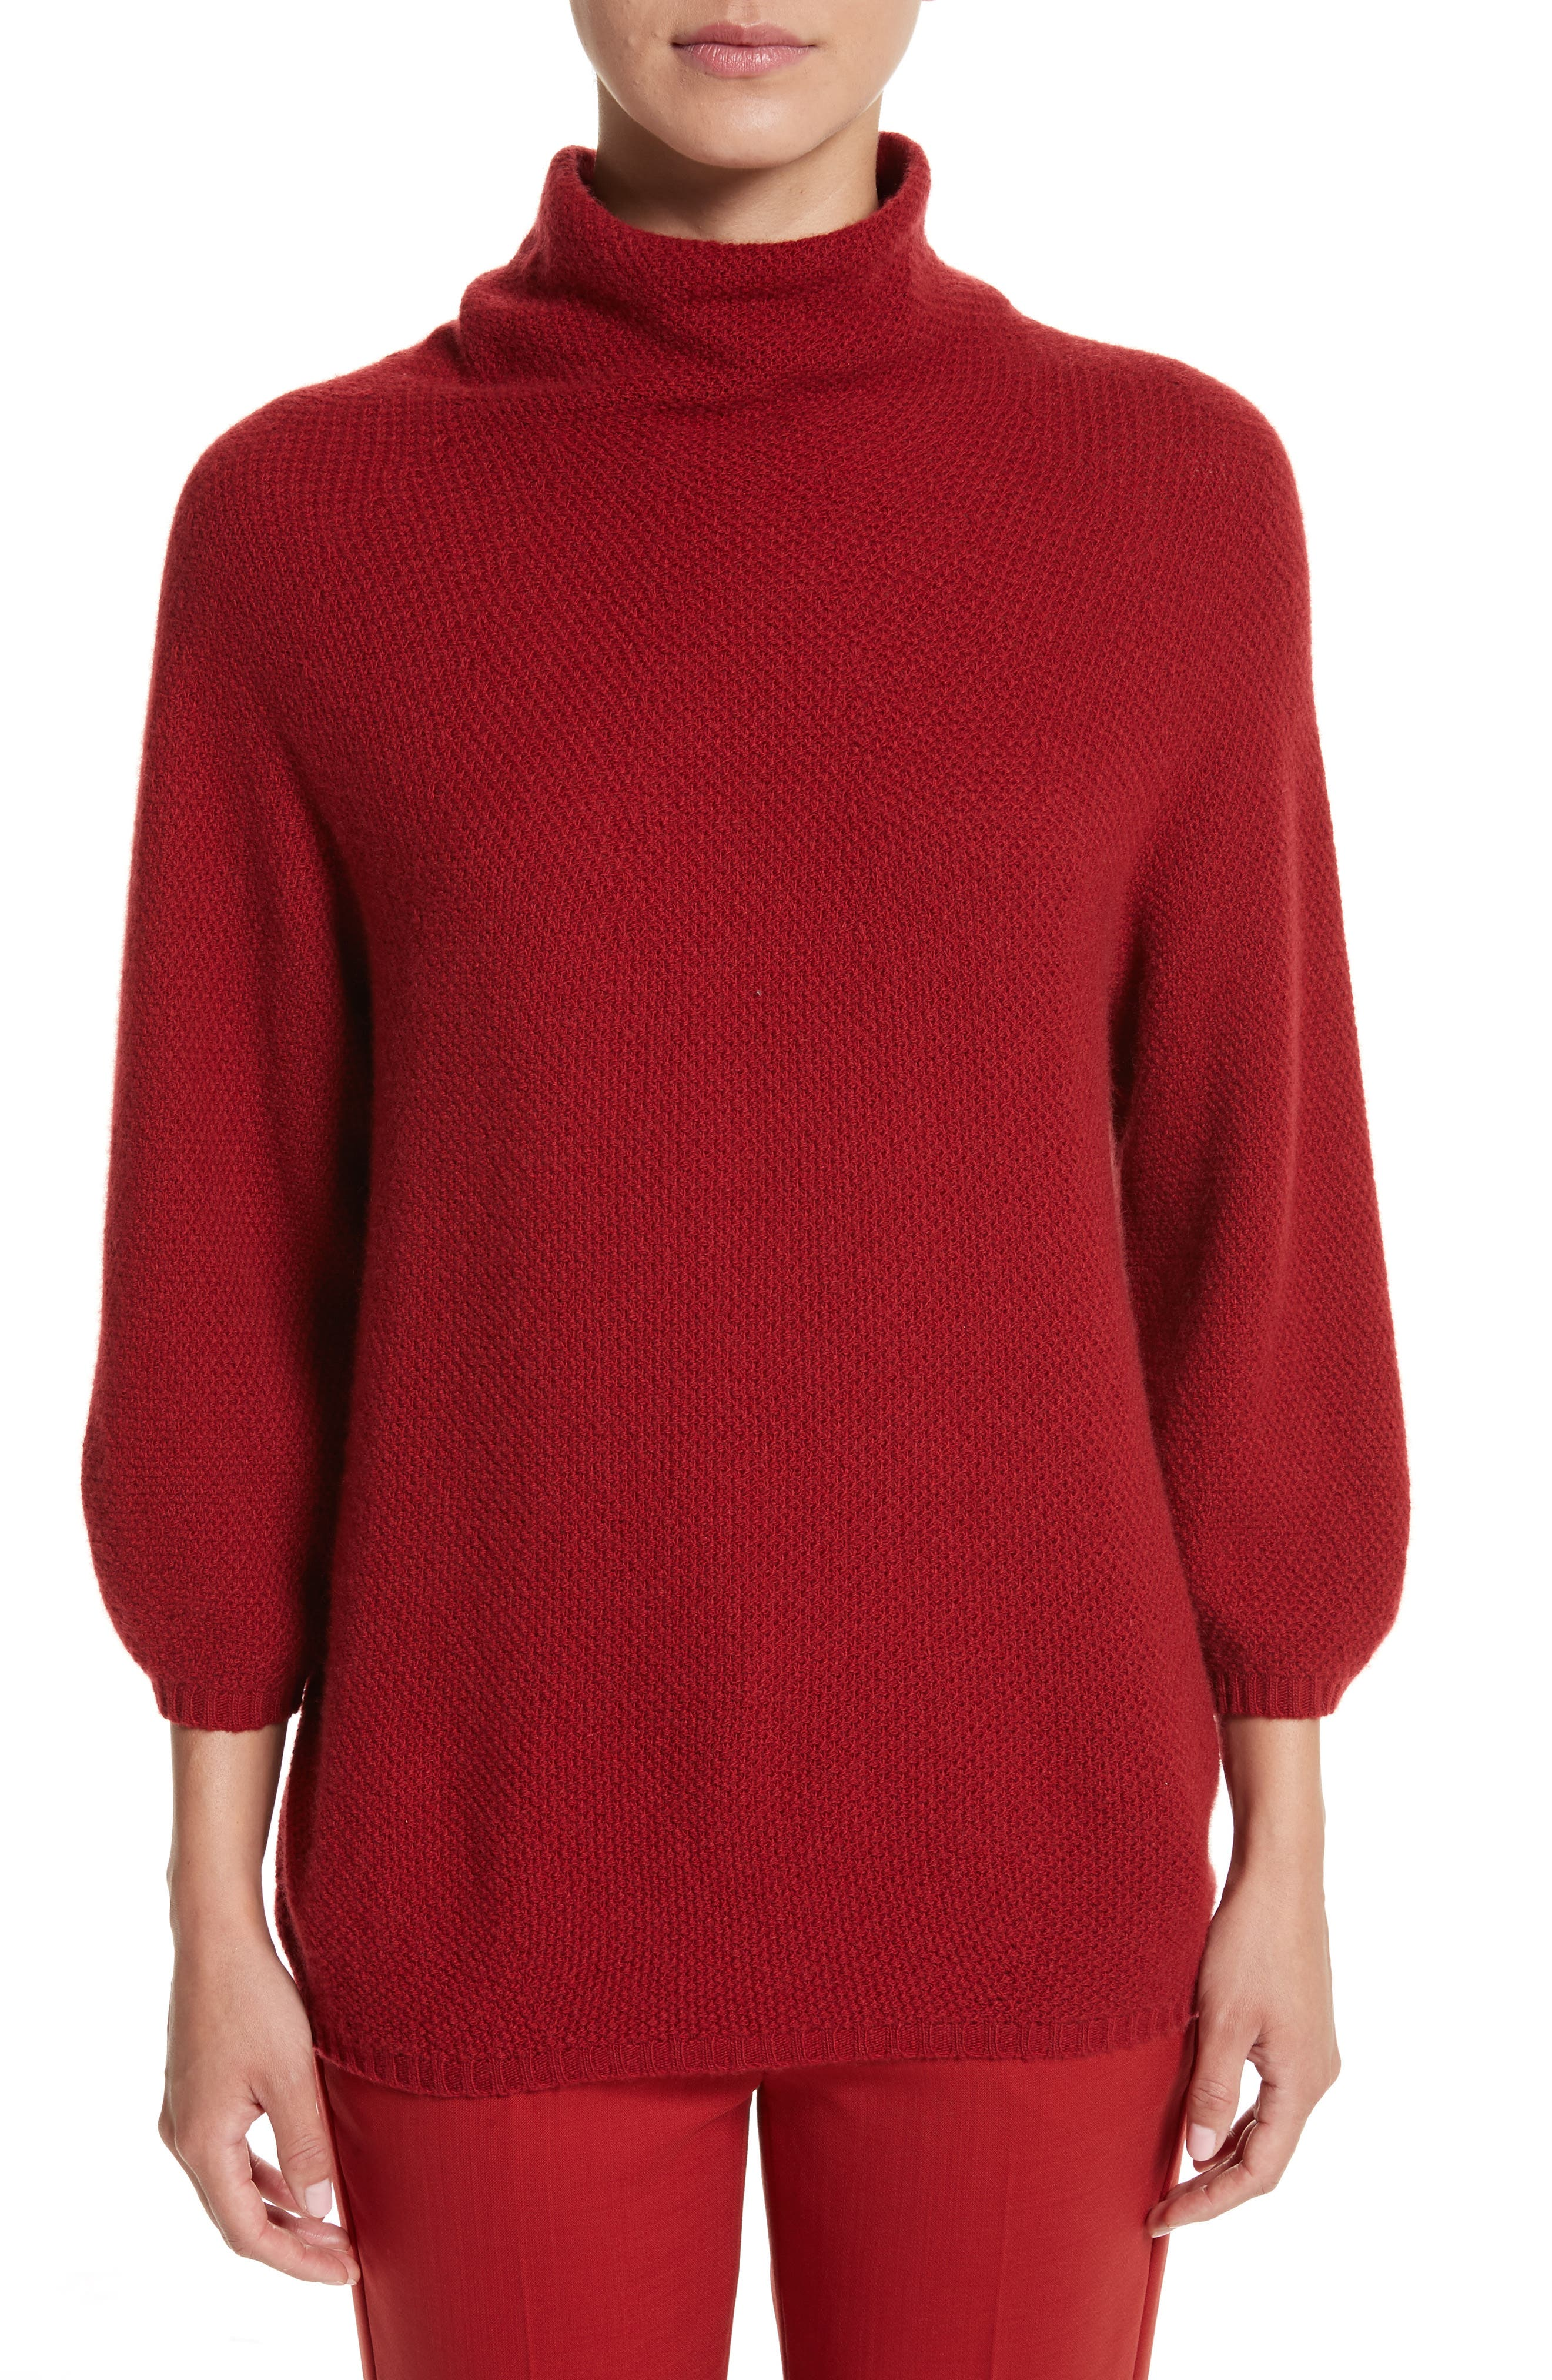 Belgio Wool & Cashmere Sweater,                         Main,                         color, 614